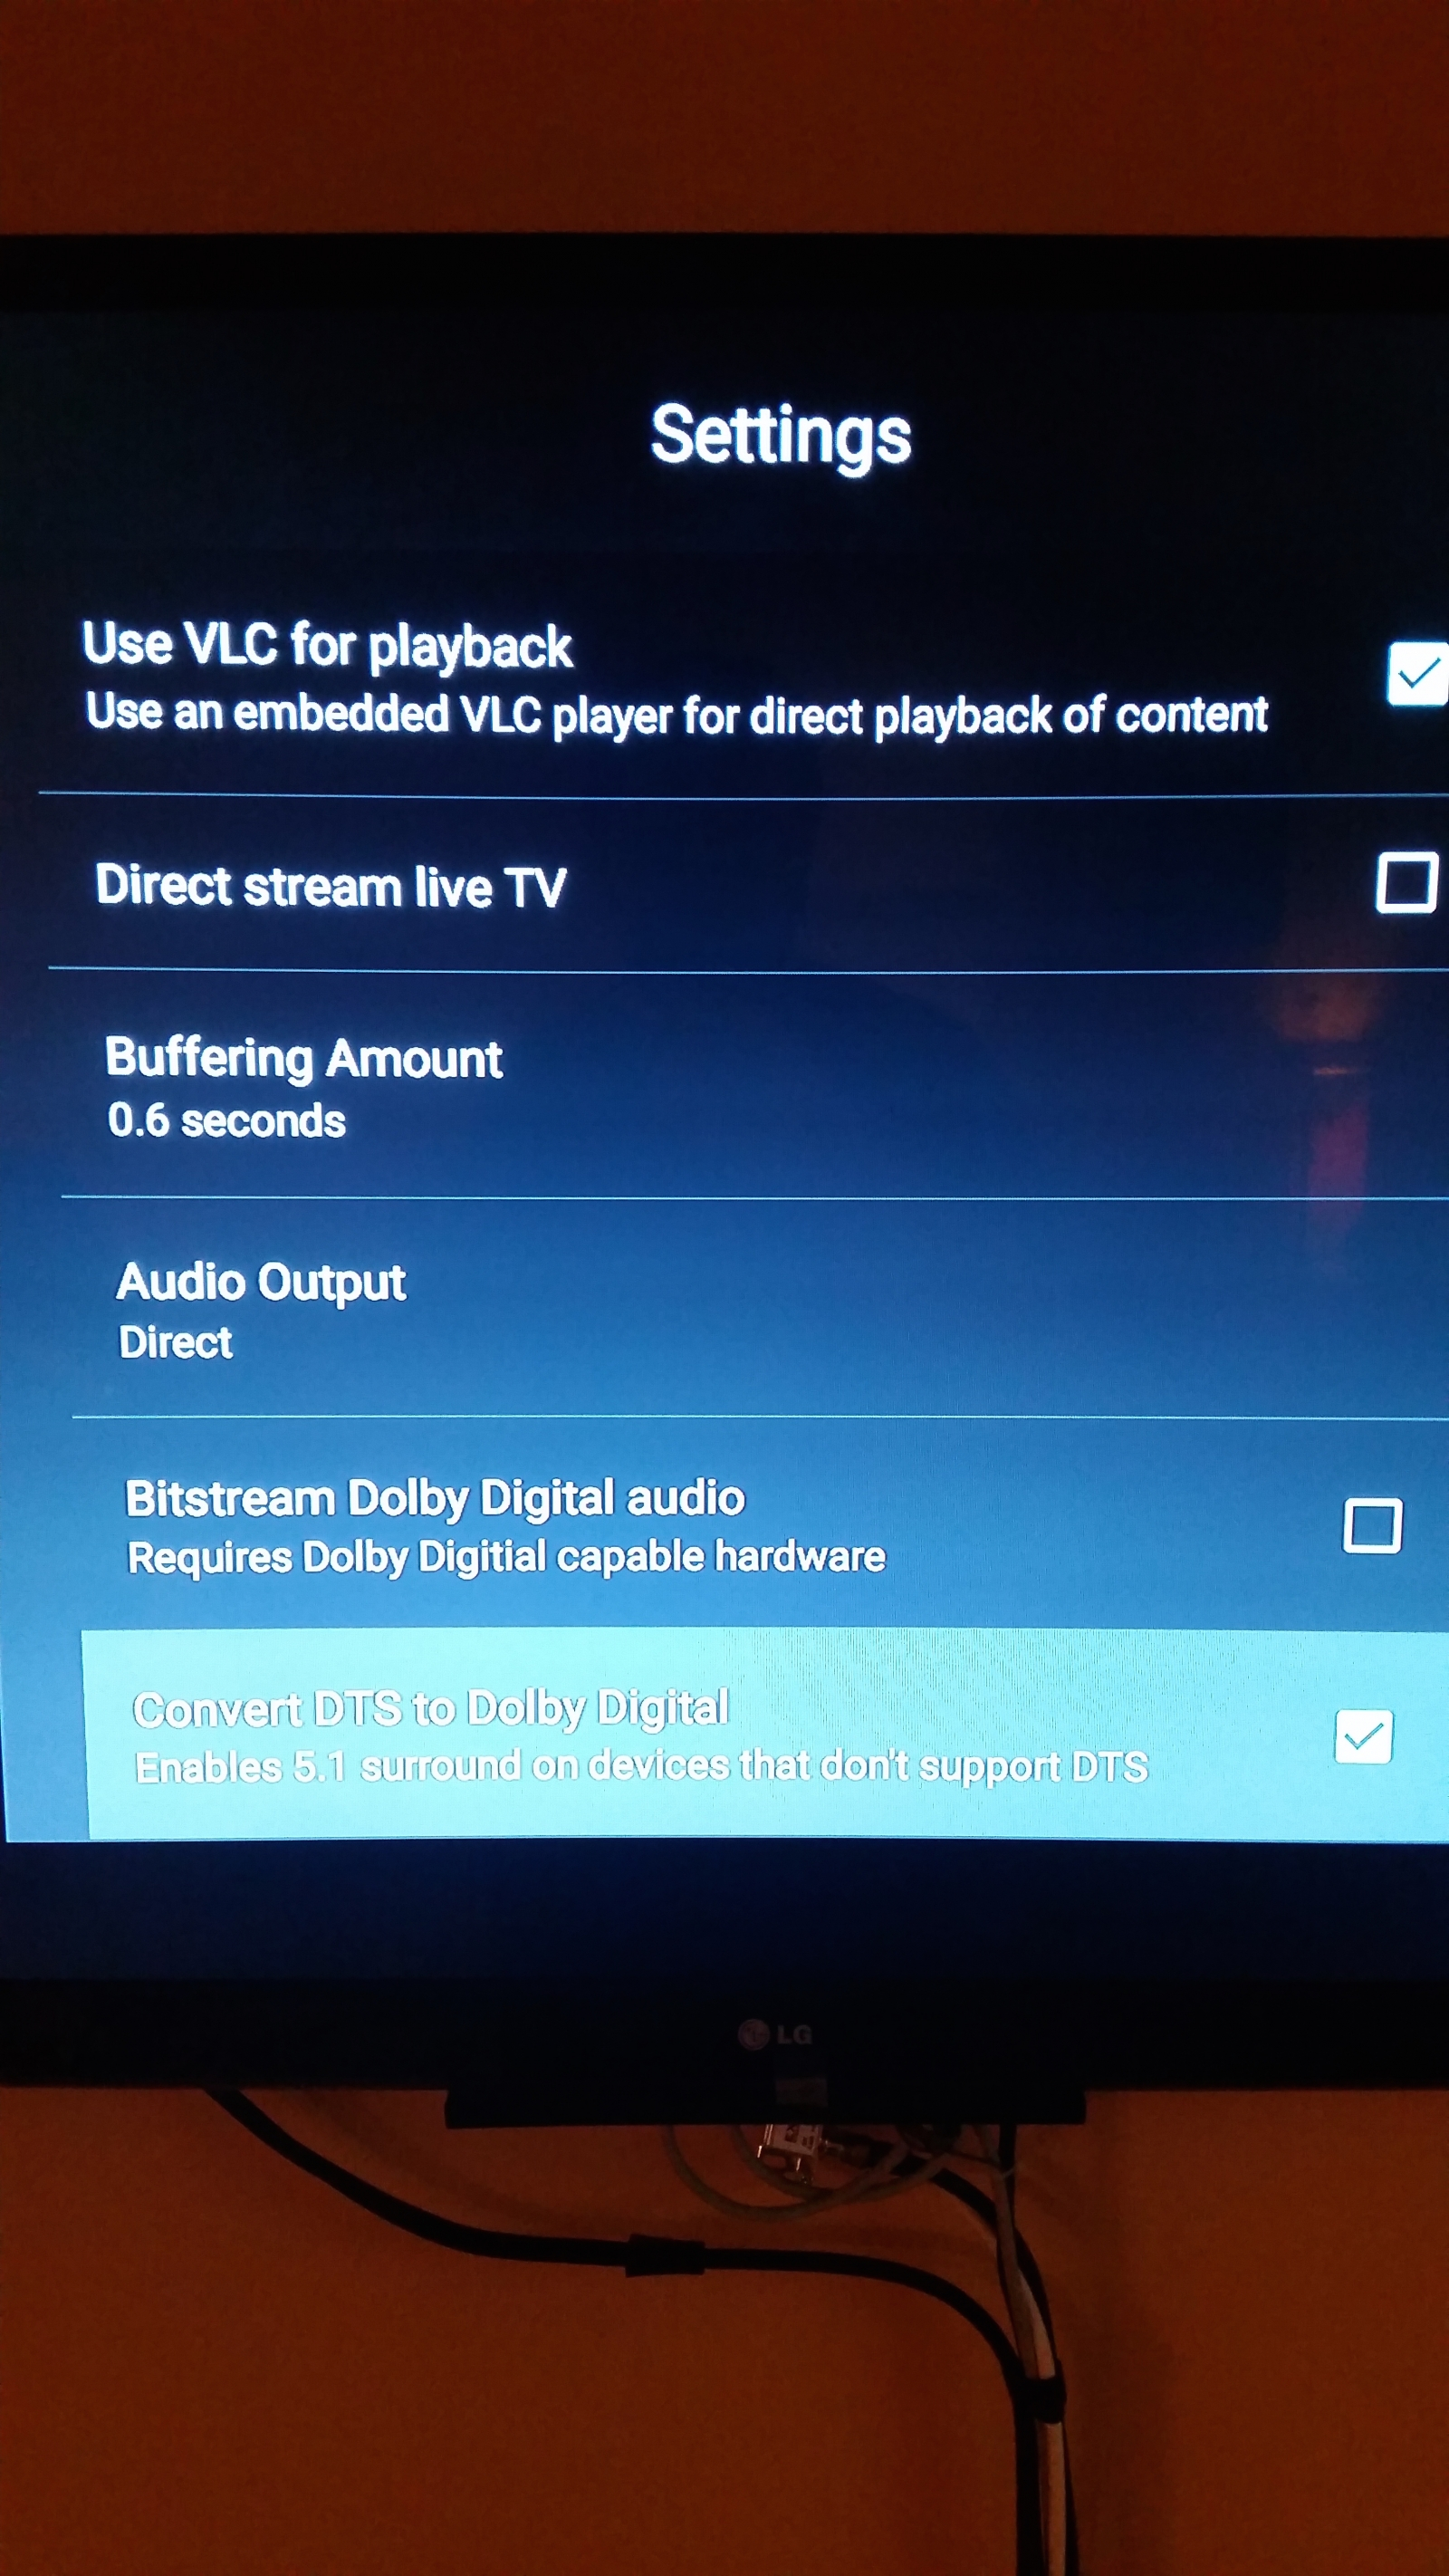 Some MKV files no longer play on FireTV after update